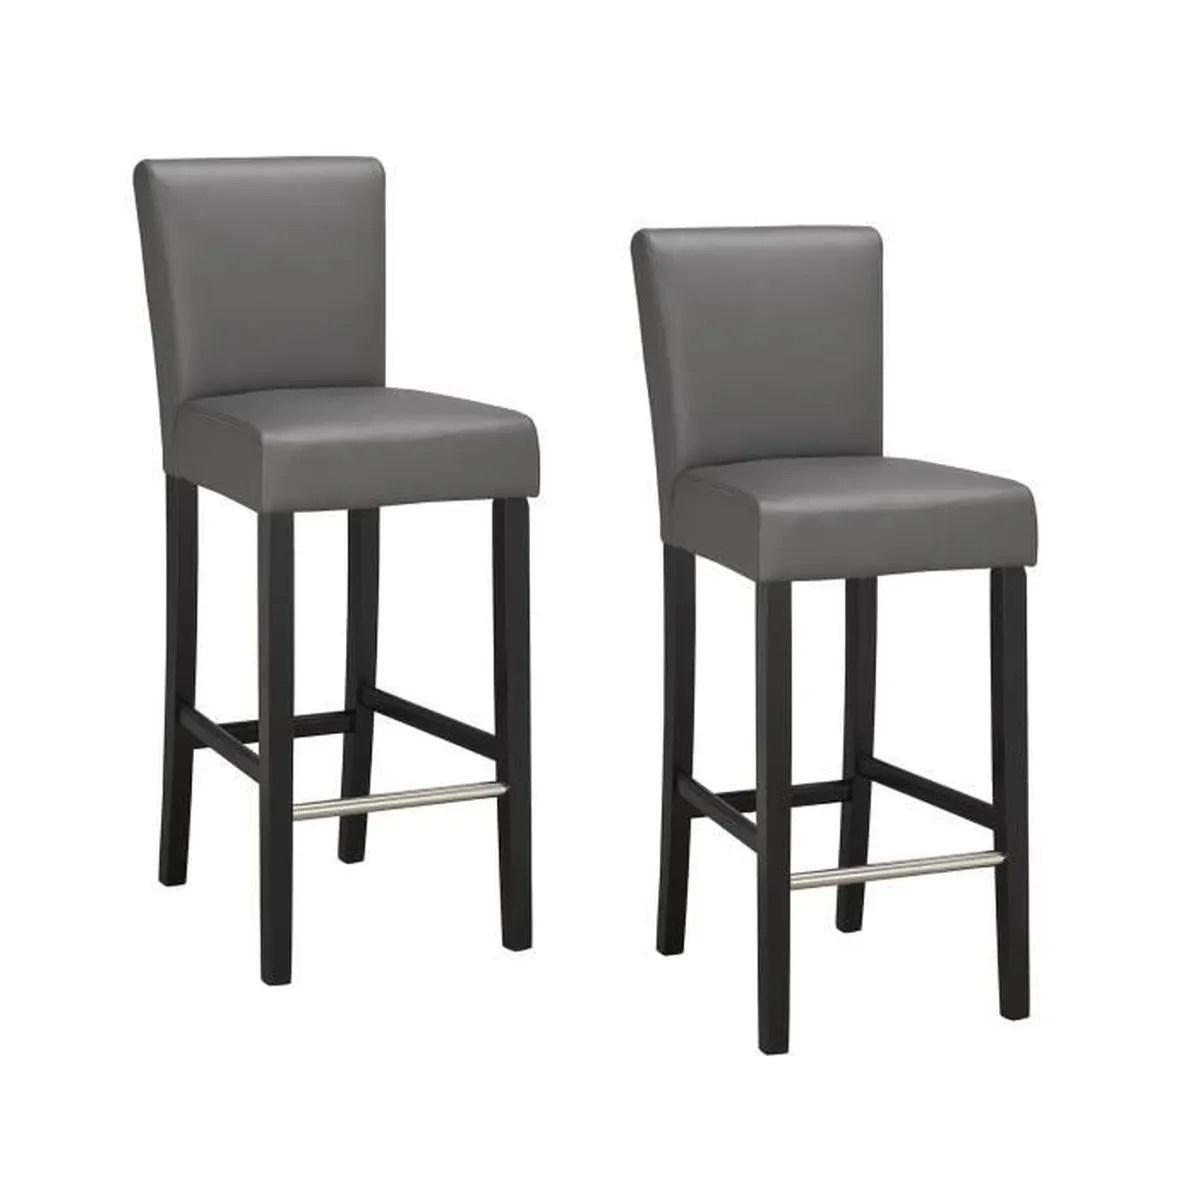 Elvis Lot De 2 Tabourets De Bar En Simili Gris Achat - York Lot De 2 Tabourets De Bar Noir